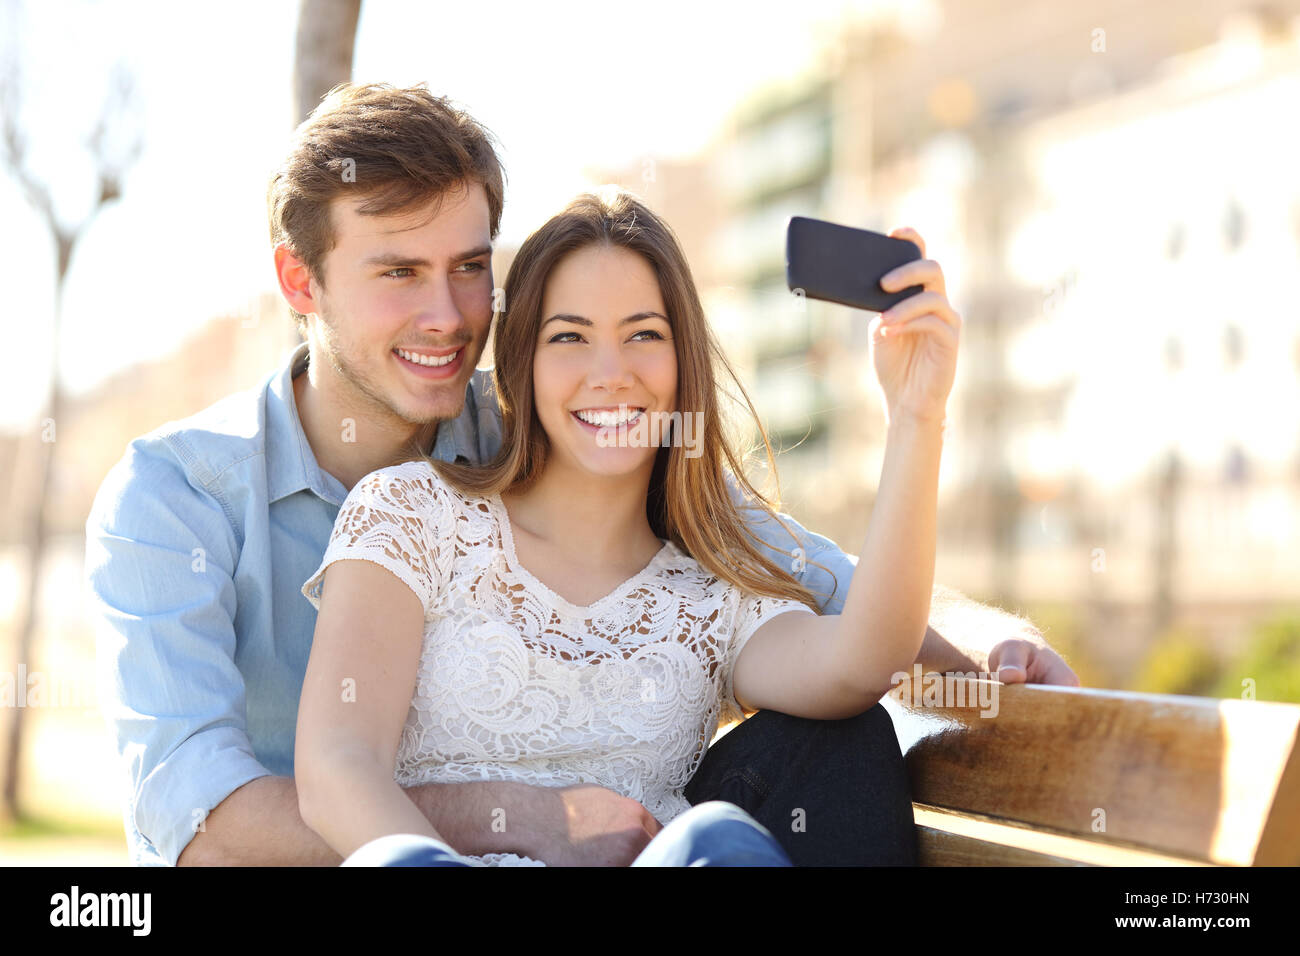 Couple Photographing A Selfie With Smart Phone In Park